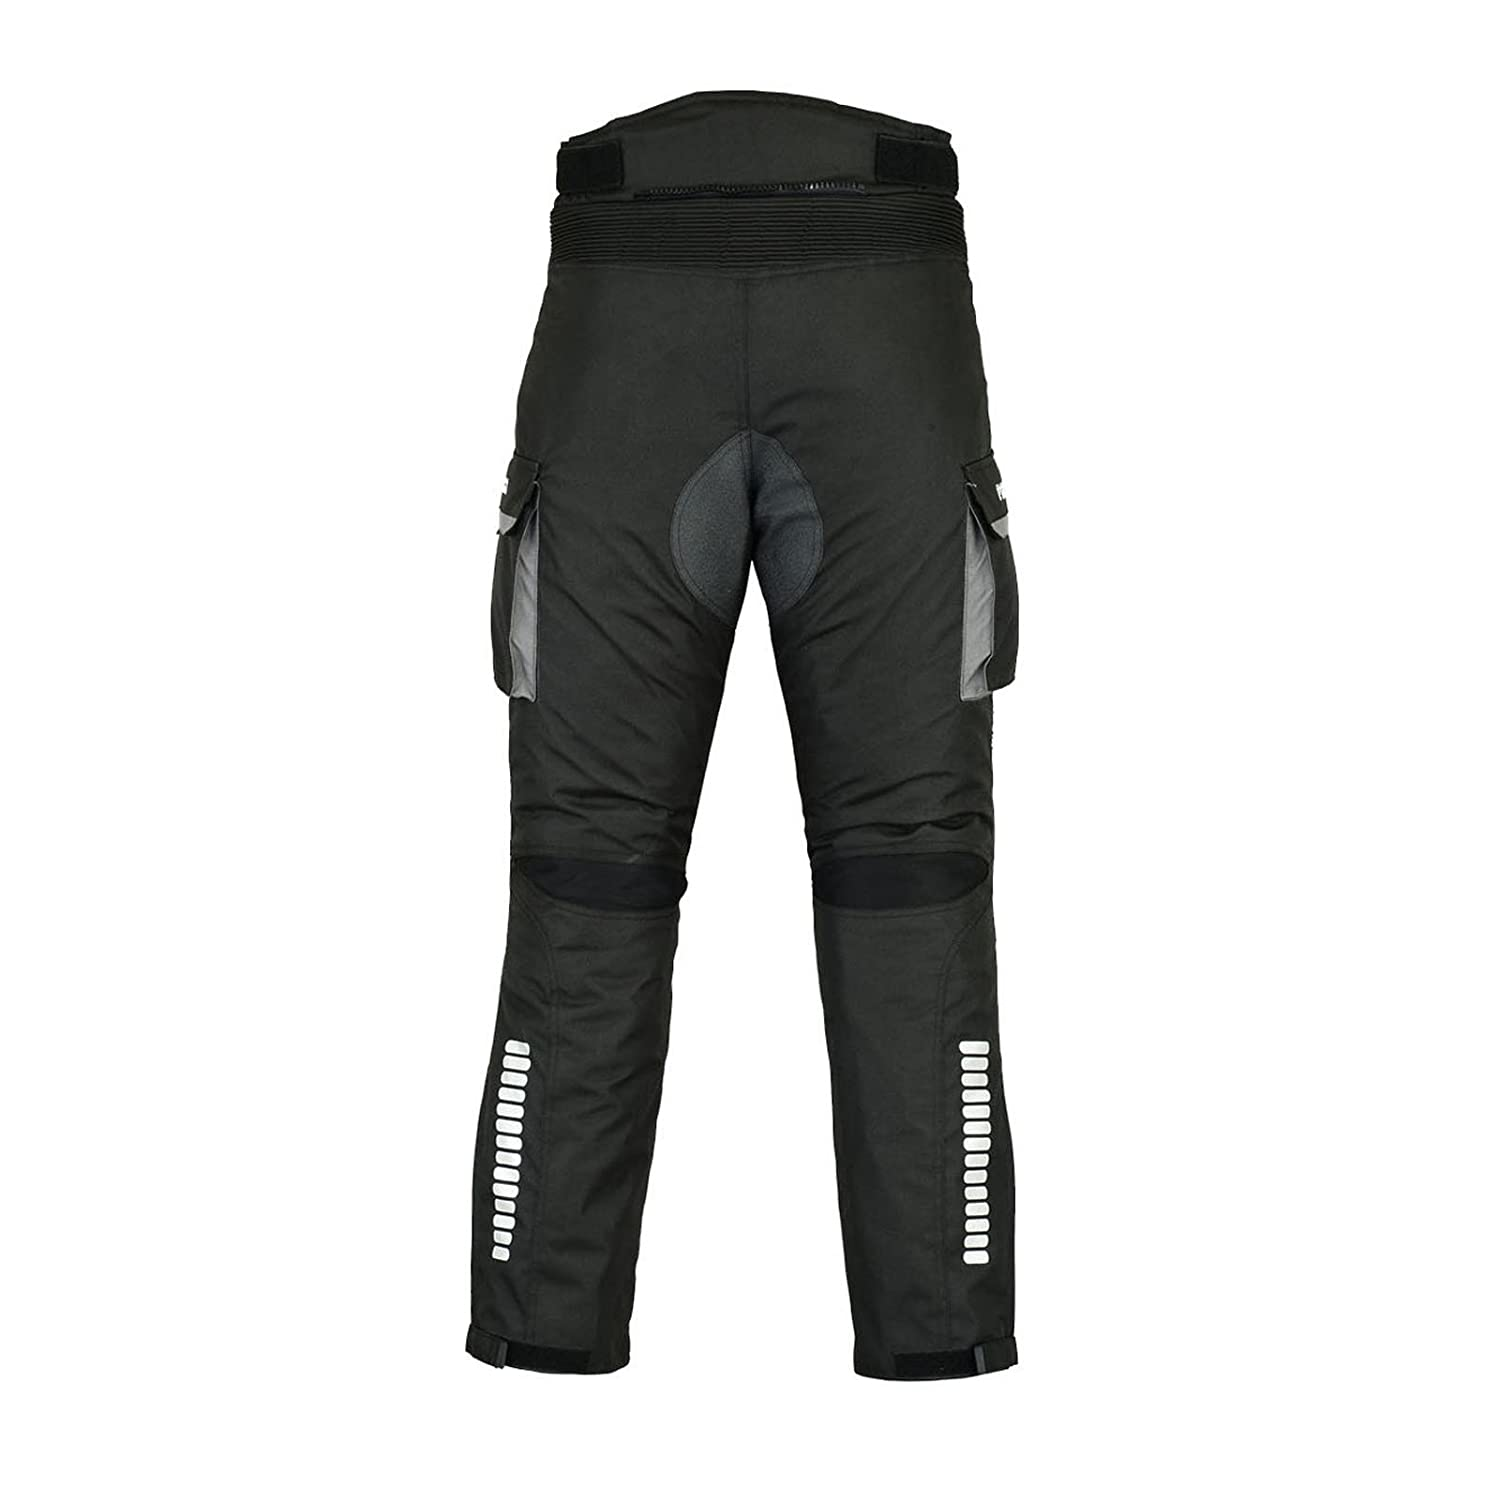 PROFIRST TR-001 CE Approved All Weather Waterproof Armoured Motorbike Motorcycle Trouser Pant with Removable Lining